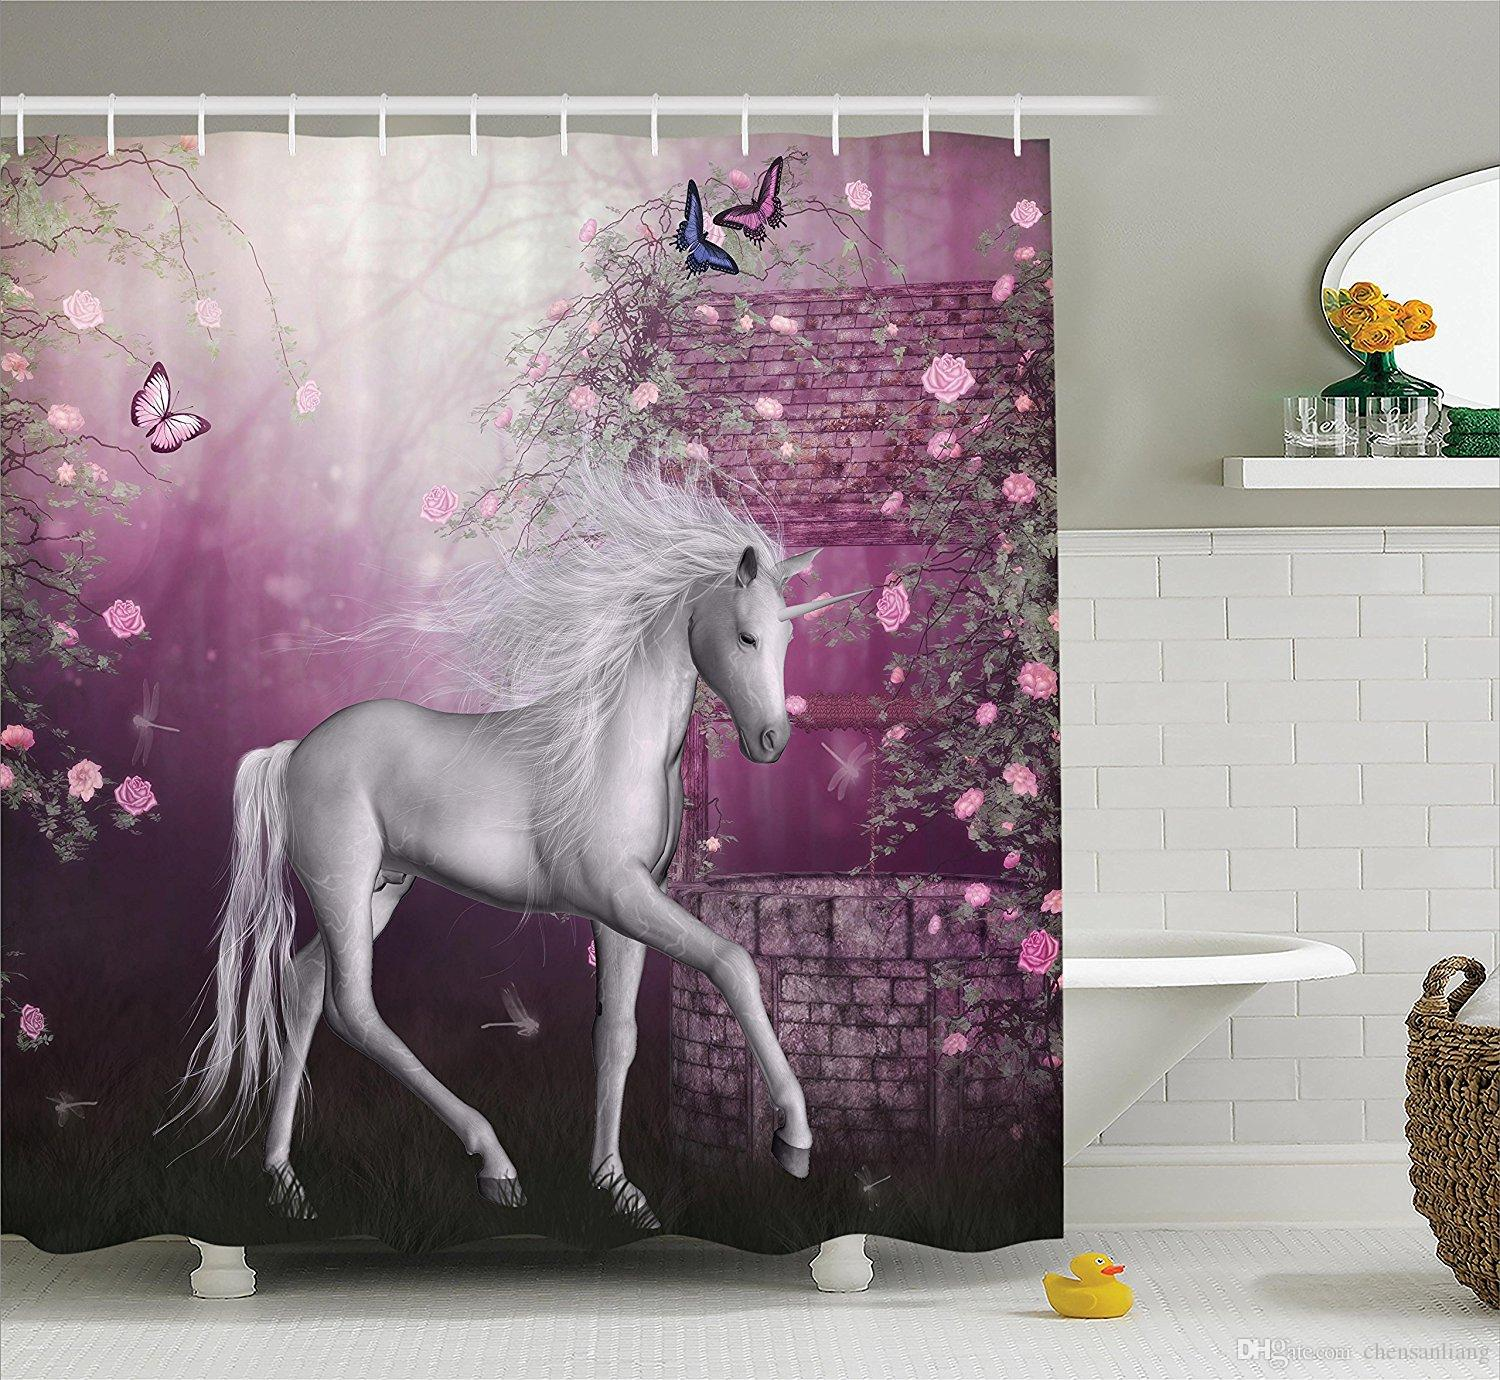 2018 Shower Curtain Unicorn In Rose Garden Butterflies Bathroom Polyester Curtains Waterproof Antibacterial With 12 Hooks Bath From